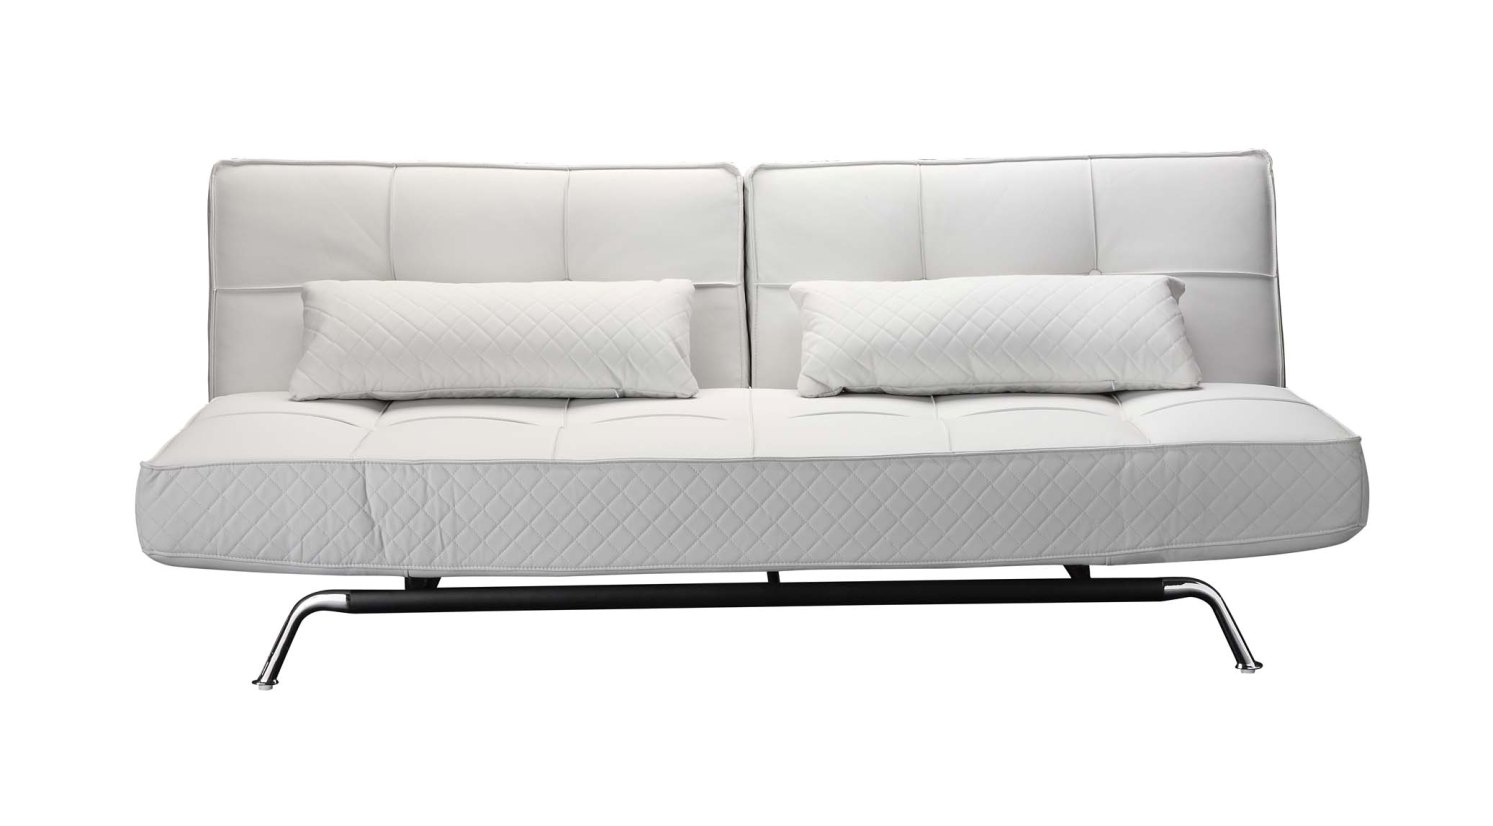 get a trendy and comfortable sofa sleeper within ForCheap Trendy Sofas